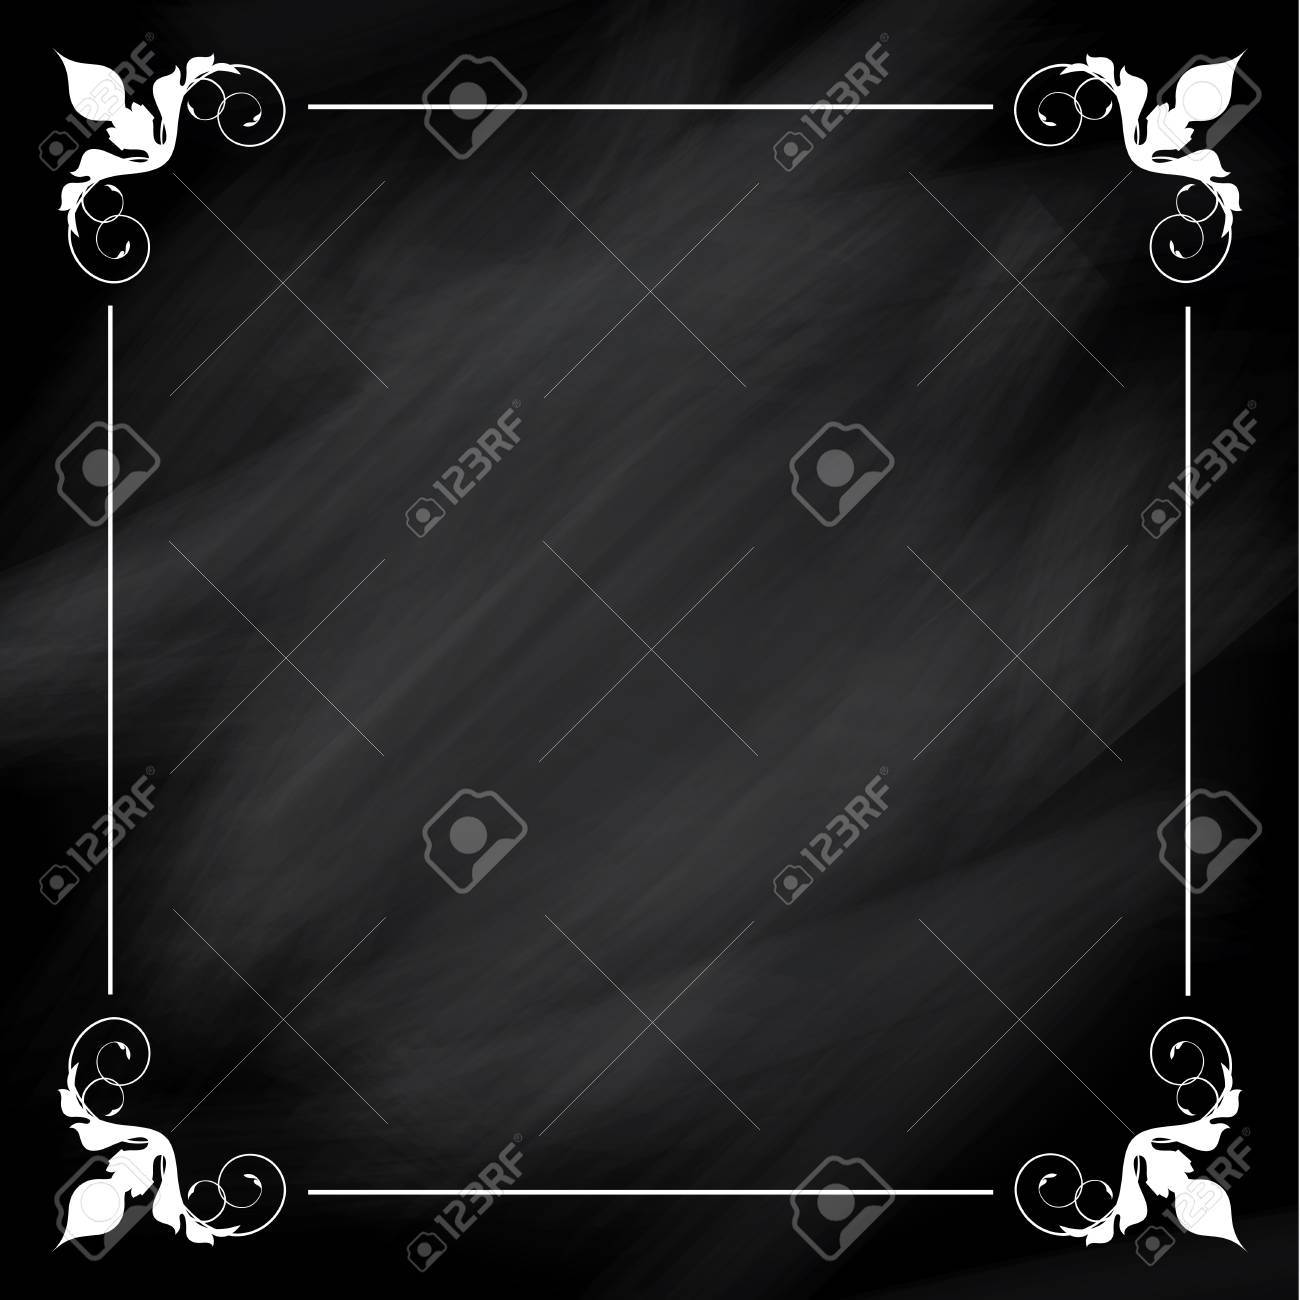 Chalkboard Background With A Decorative Border Stock Photo